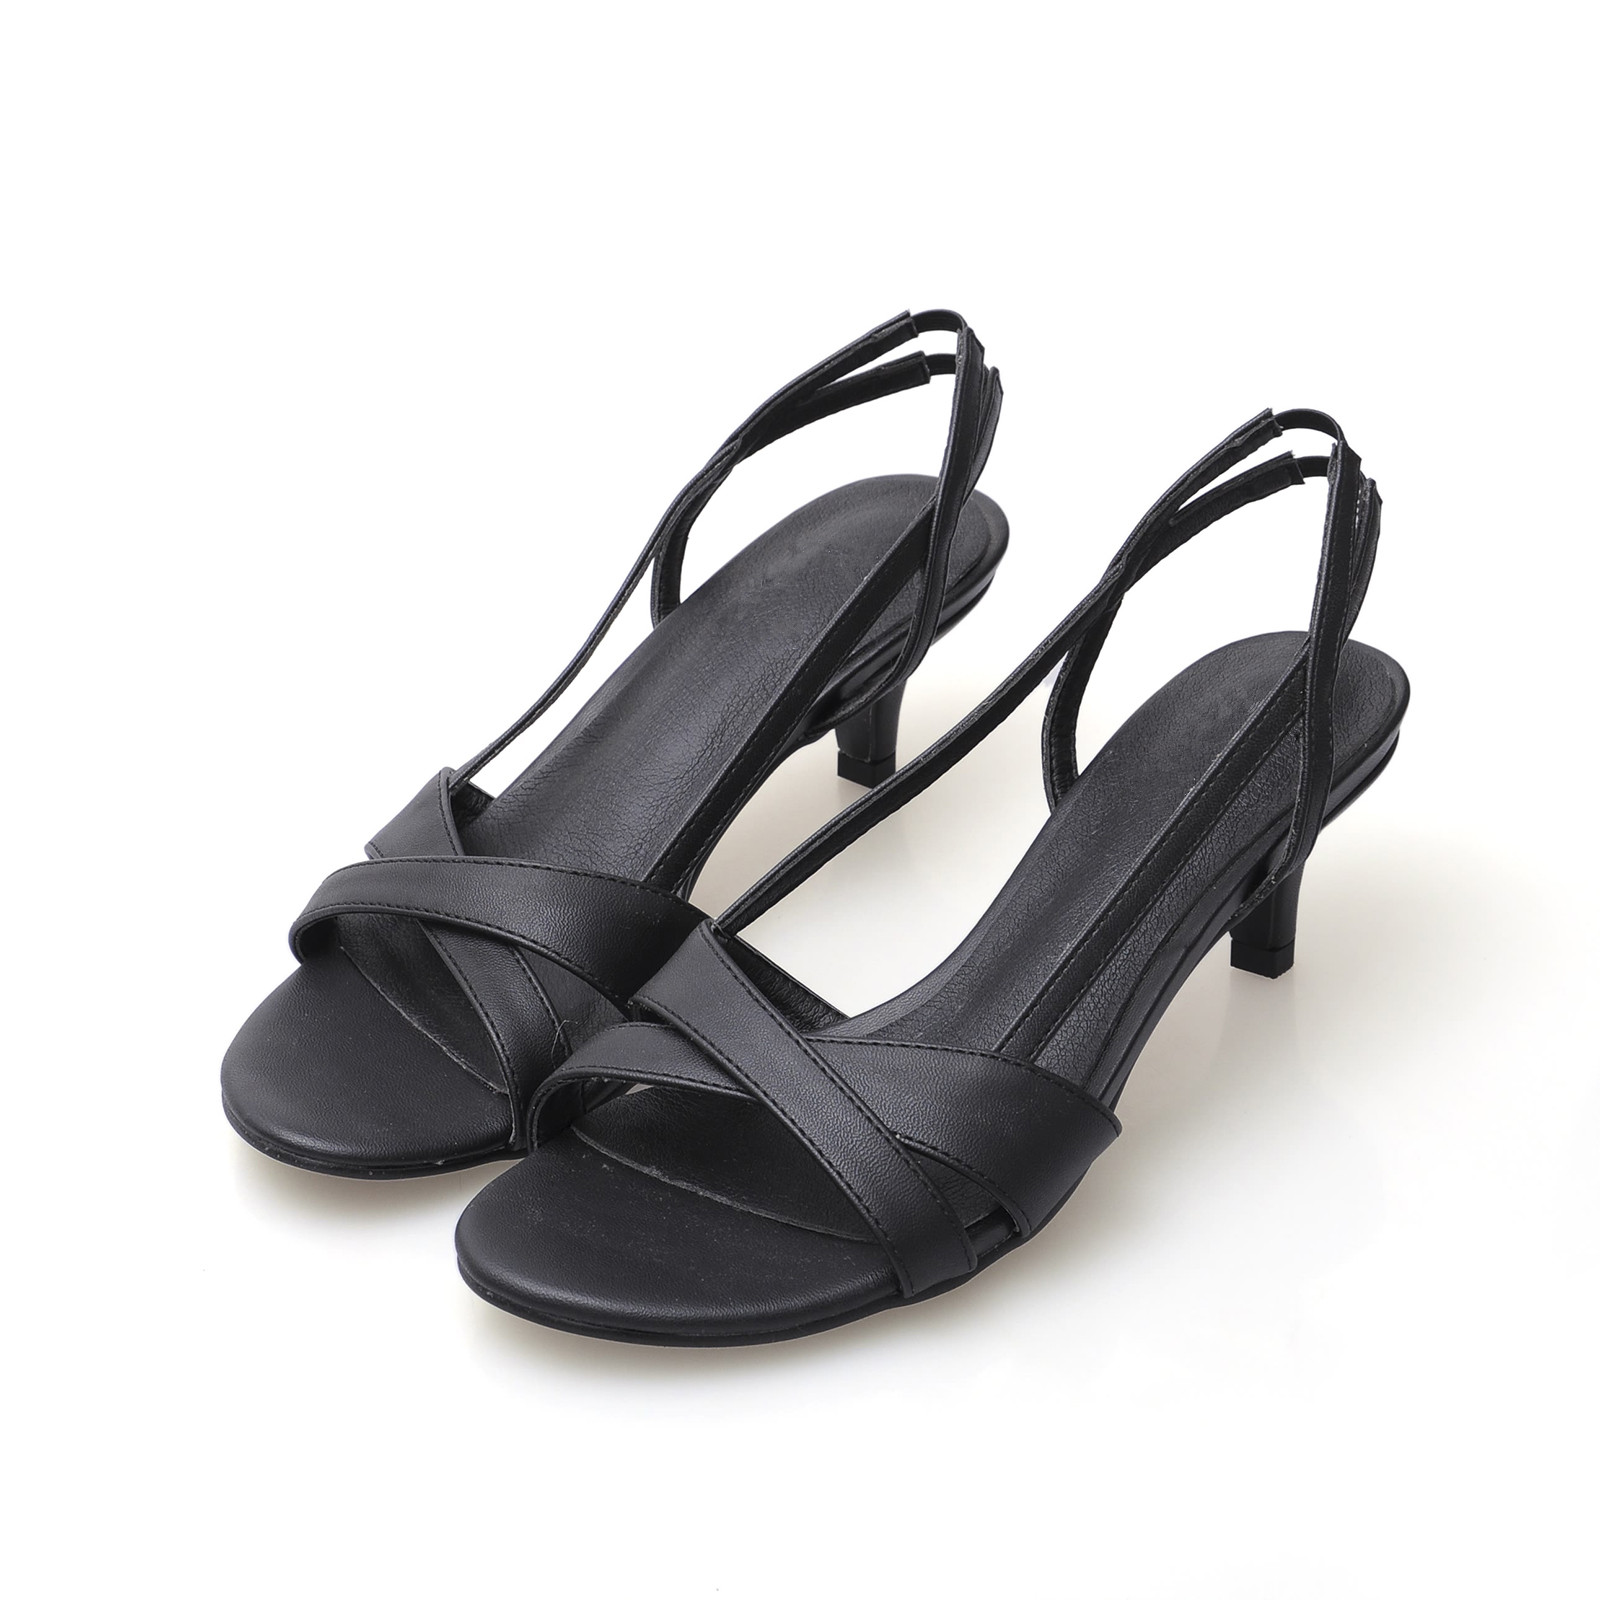 High Quality New Summer Fashion Hot Women Shoes Thin Med High Heels Sexy Party Ladies Open Toe Pumps Sandals Shoes SMYCN-68 high quality new summer fashion hot women shoes thin high heels sexy party shining ladies peep toe metallic color pumps sandals